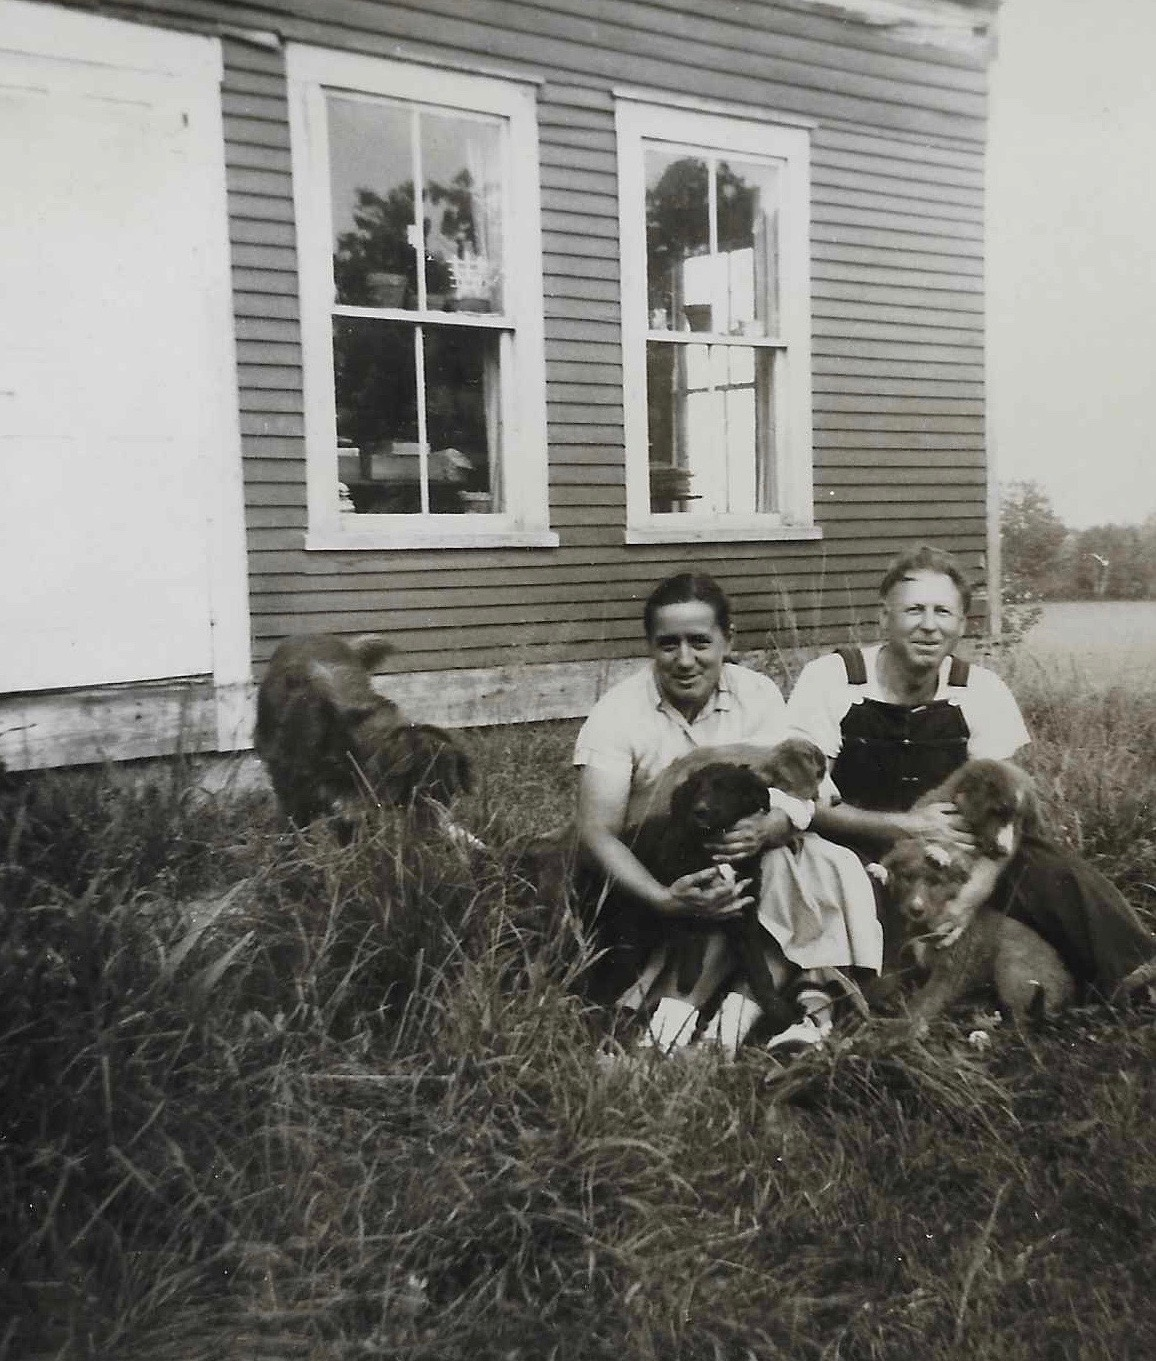 Silvia Narma (Umbjarv) and Juhan Umbjarv, on first Vermont farm, ca. 1957